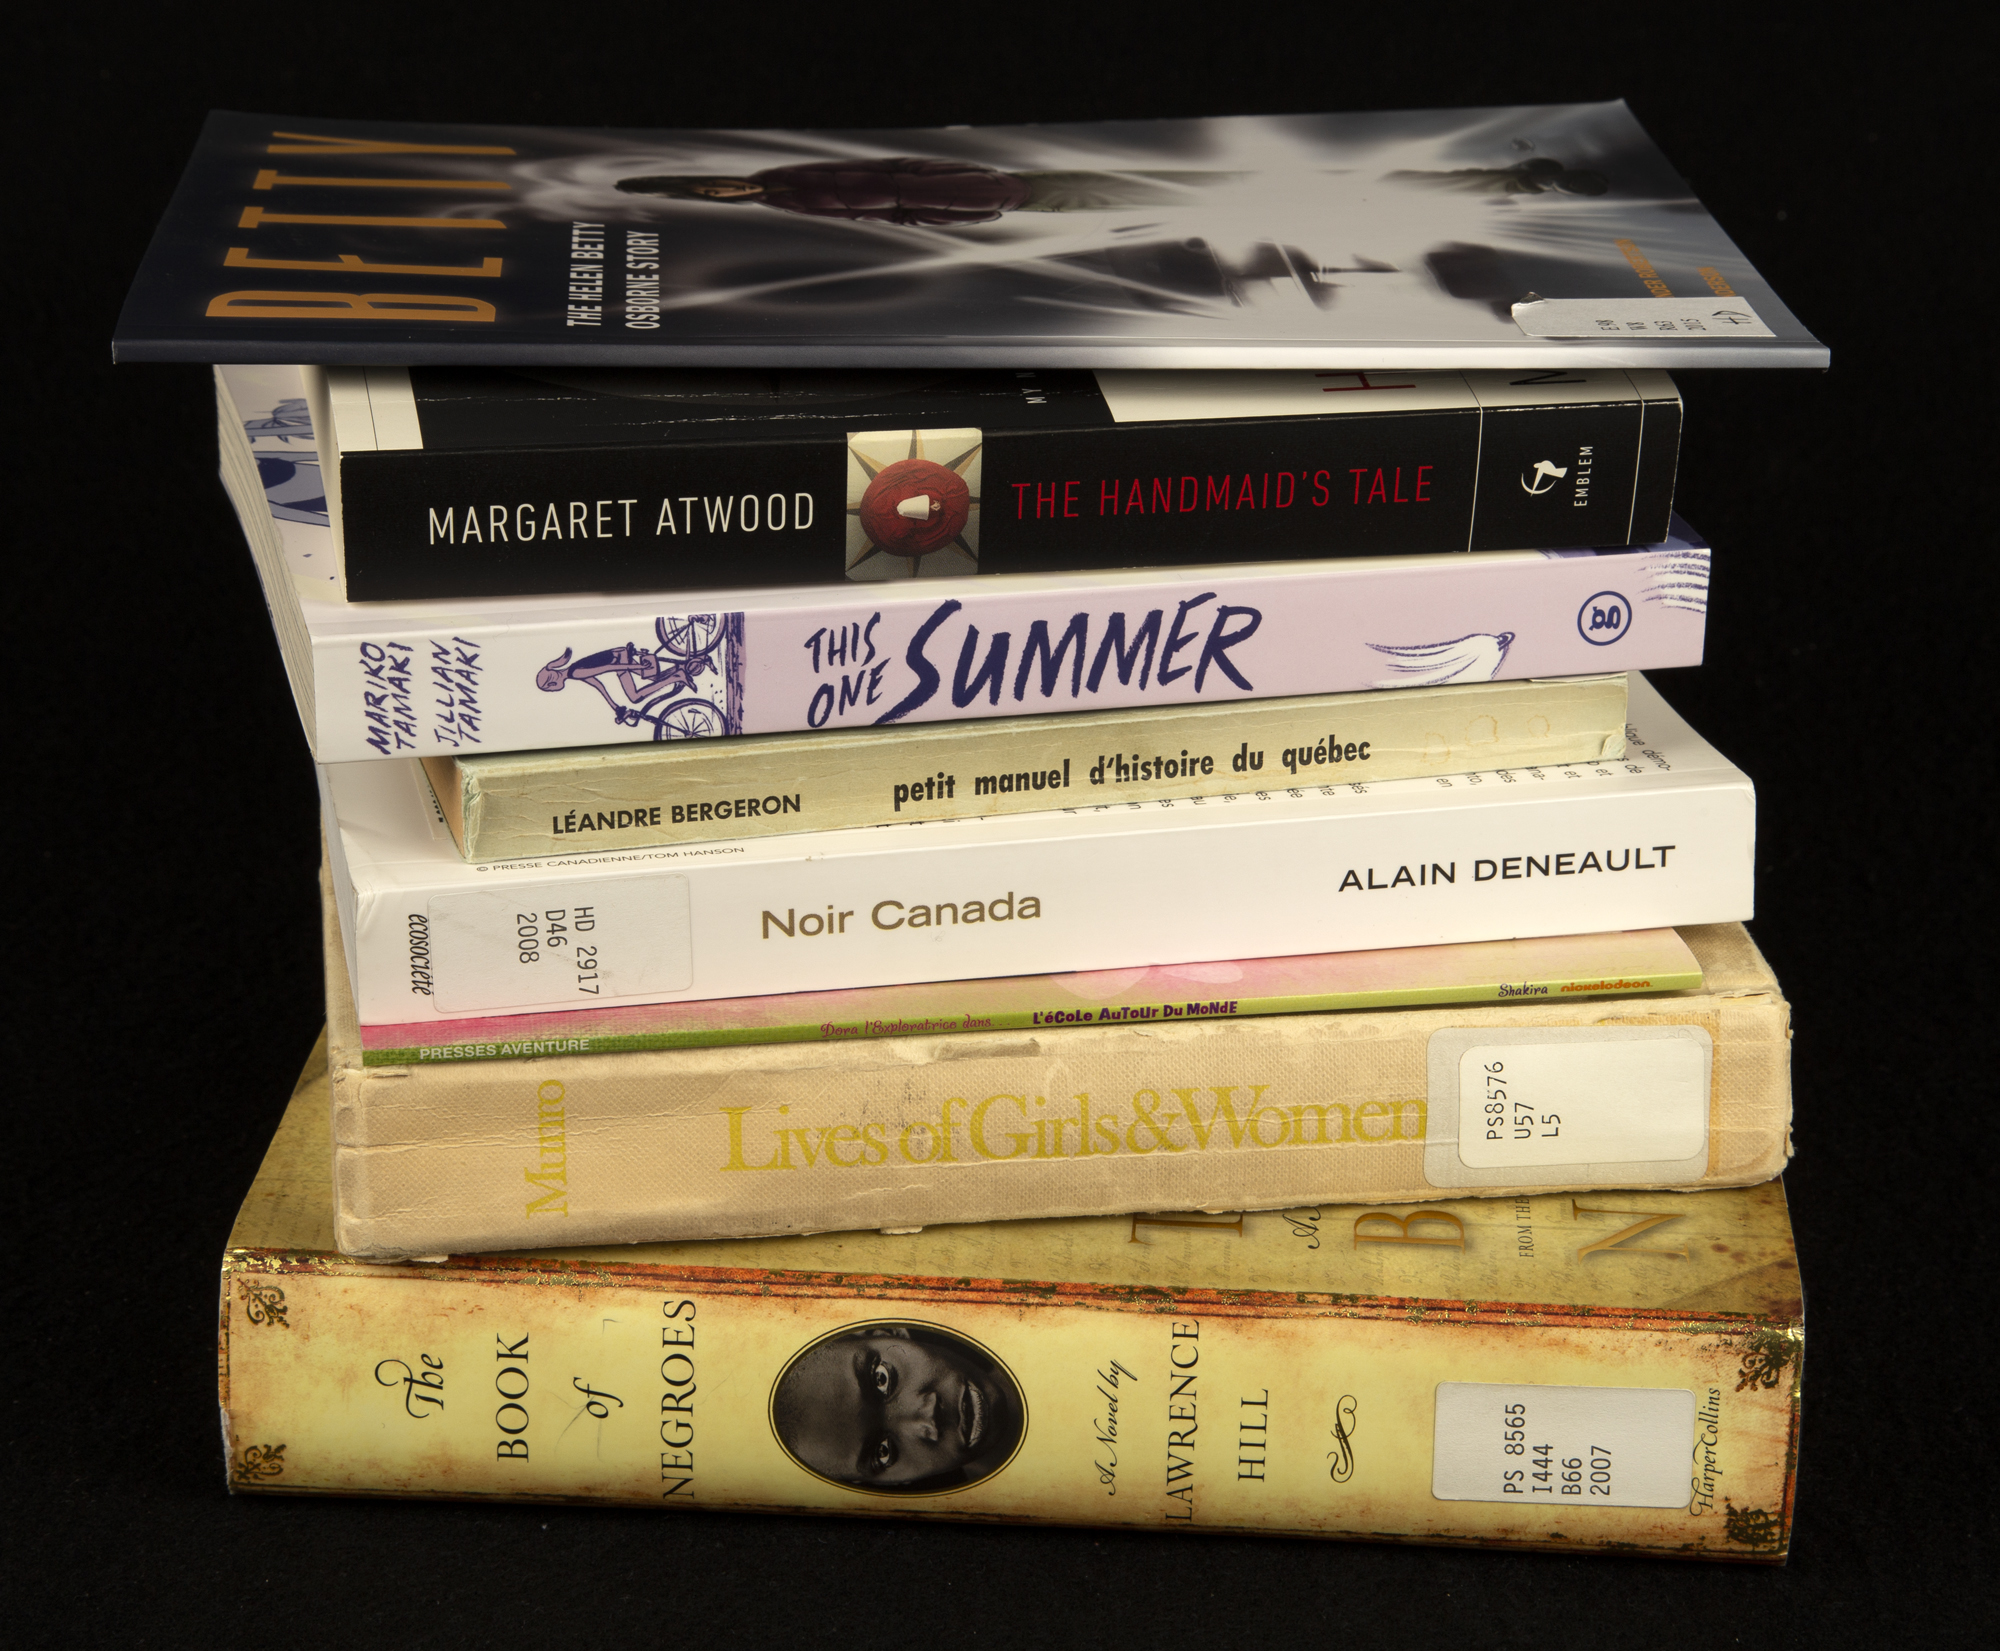 A colour photograph showing the spines of a stack of books against a black background.